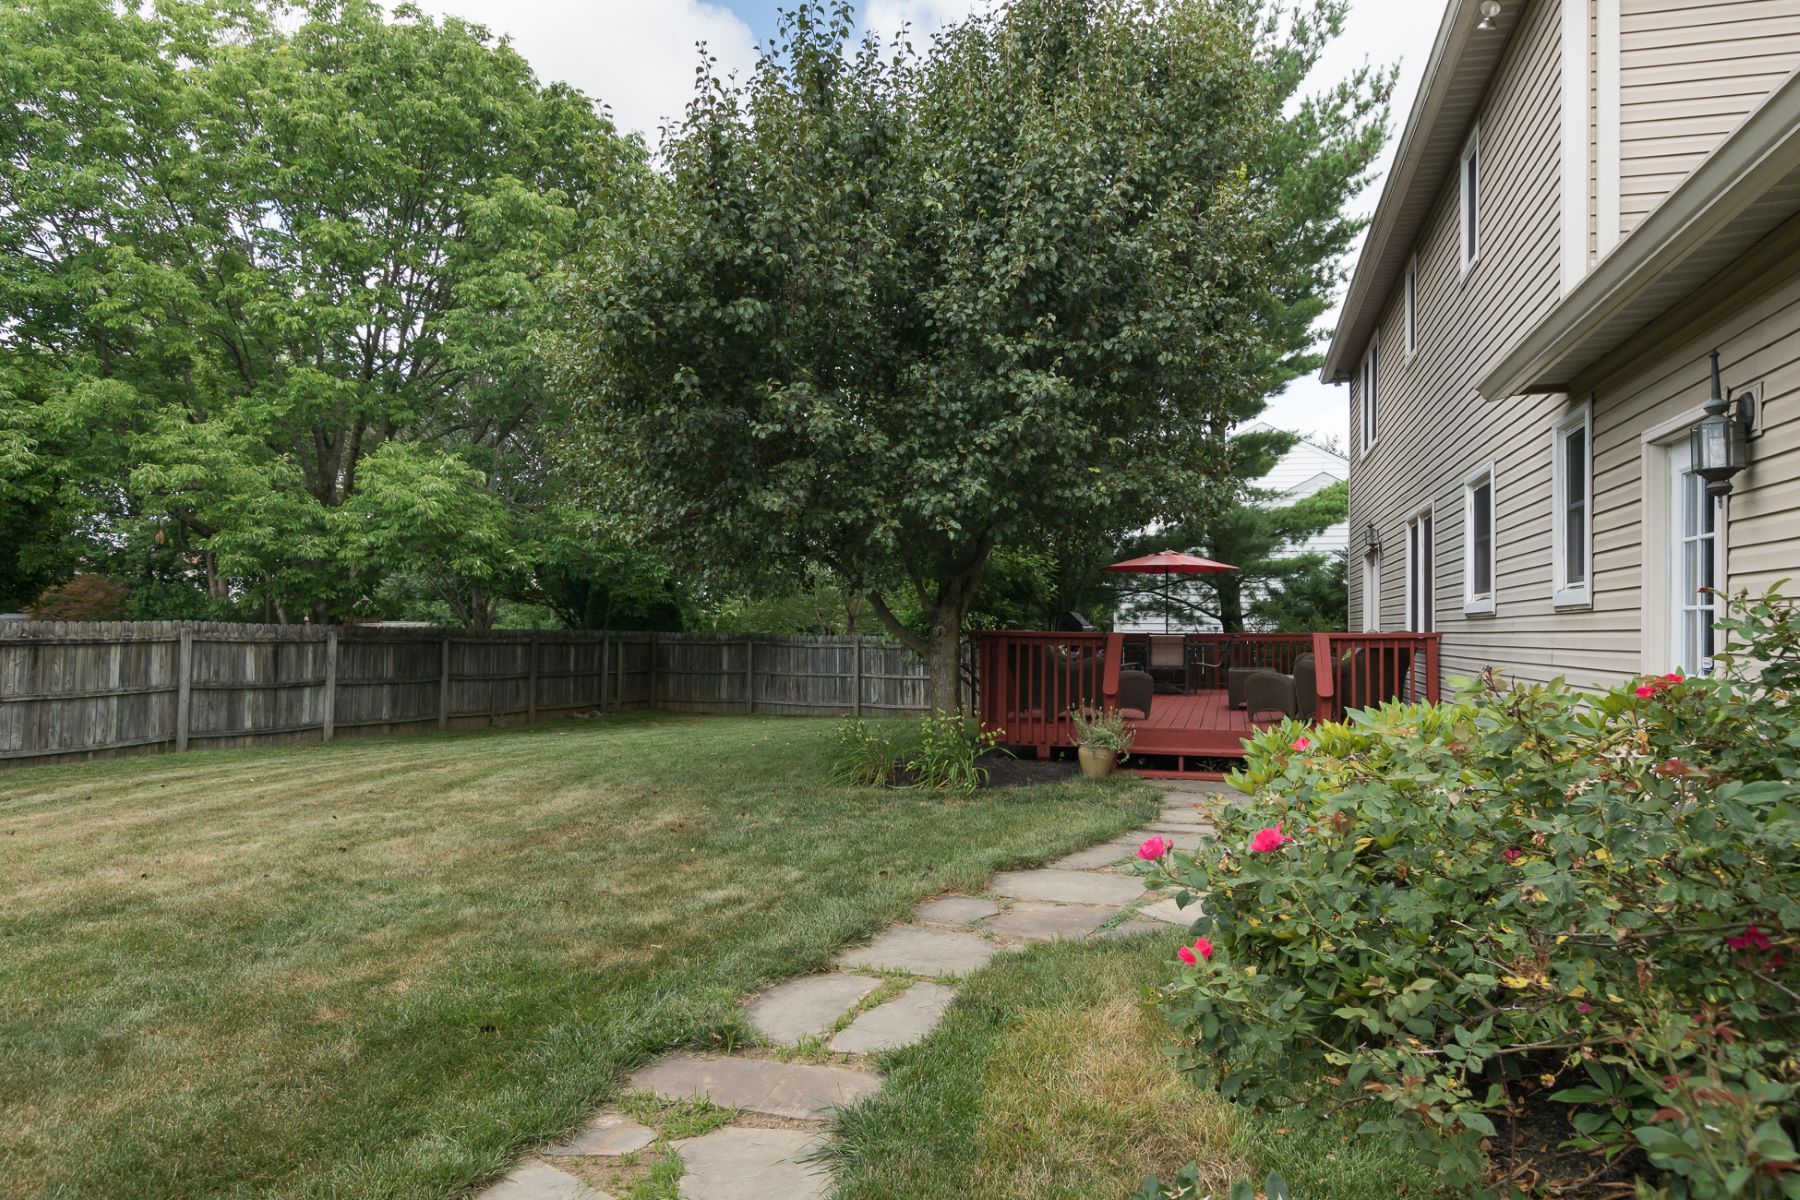 Additional photo for property listing at A Hop, Skip, and a Jump from Park, Town, and Trail 19 Yeger Drive, Lawrenceville, New Jersey 08648 United States